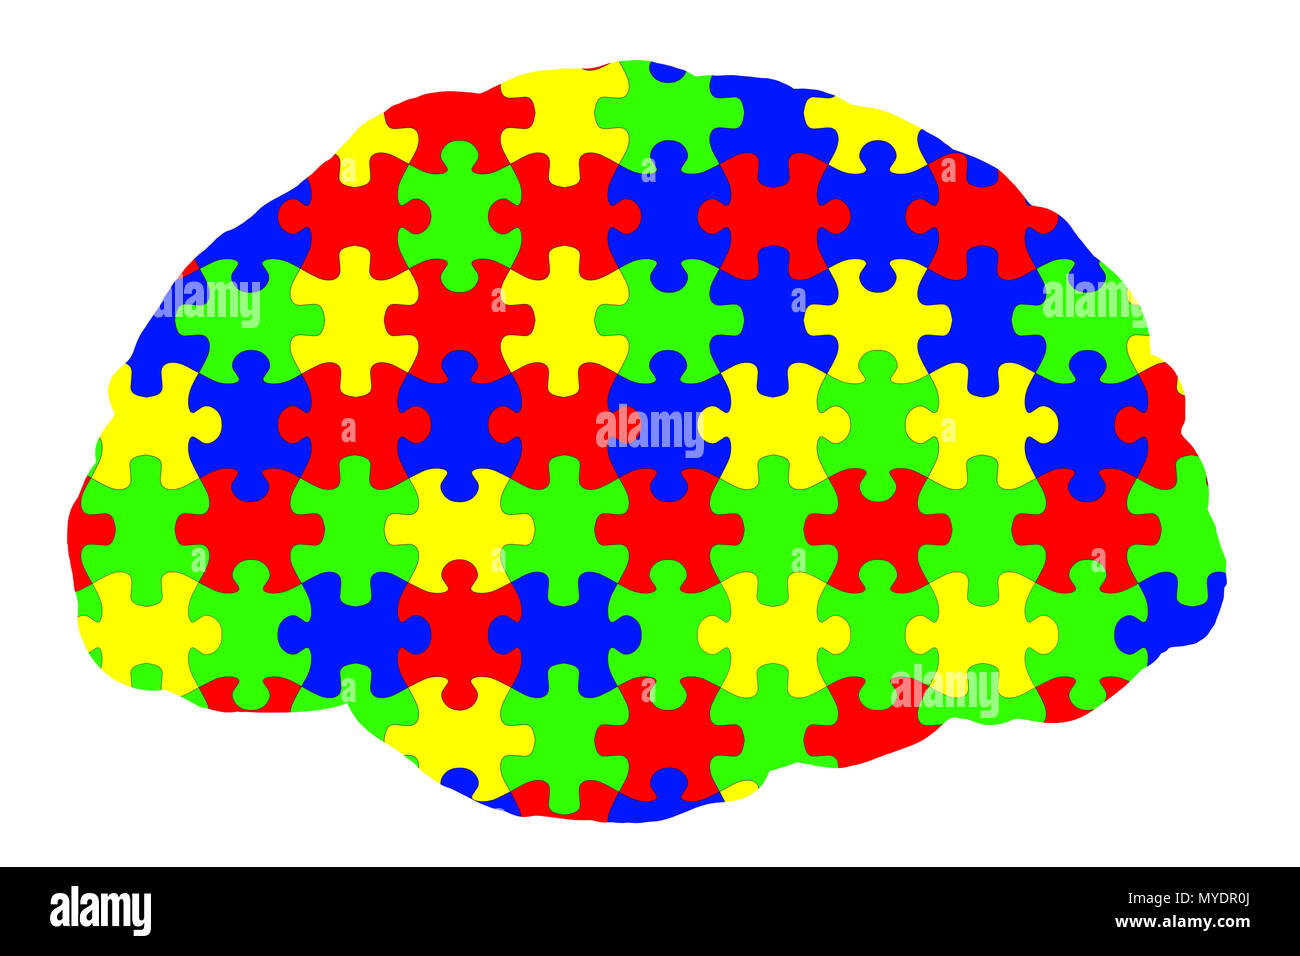 Autism spectrum disorder, conceptual illustration. Autism spectrum disorder is used to describe several neurodevelopmental disorders that involve deficits in social communication and interaction, and restricted or repetitive patterns of behaviour or interests. - Stock Image